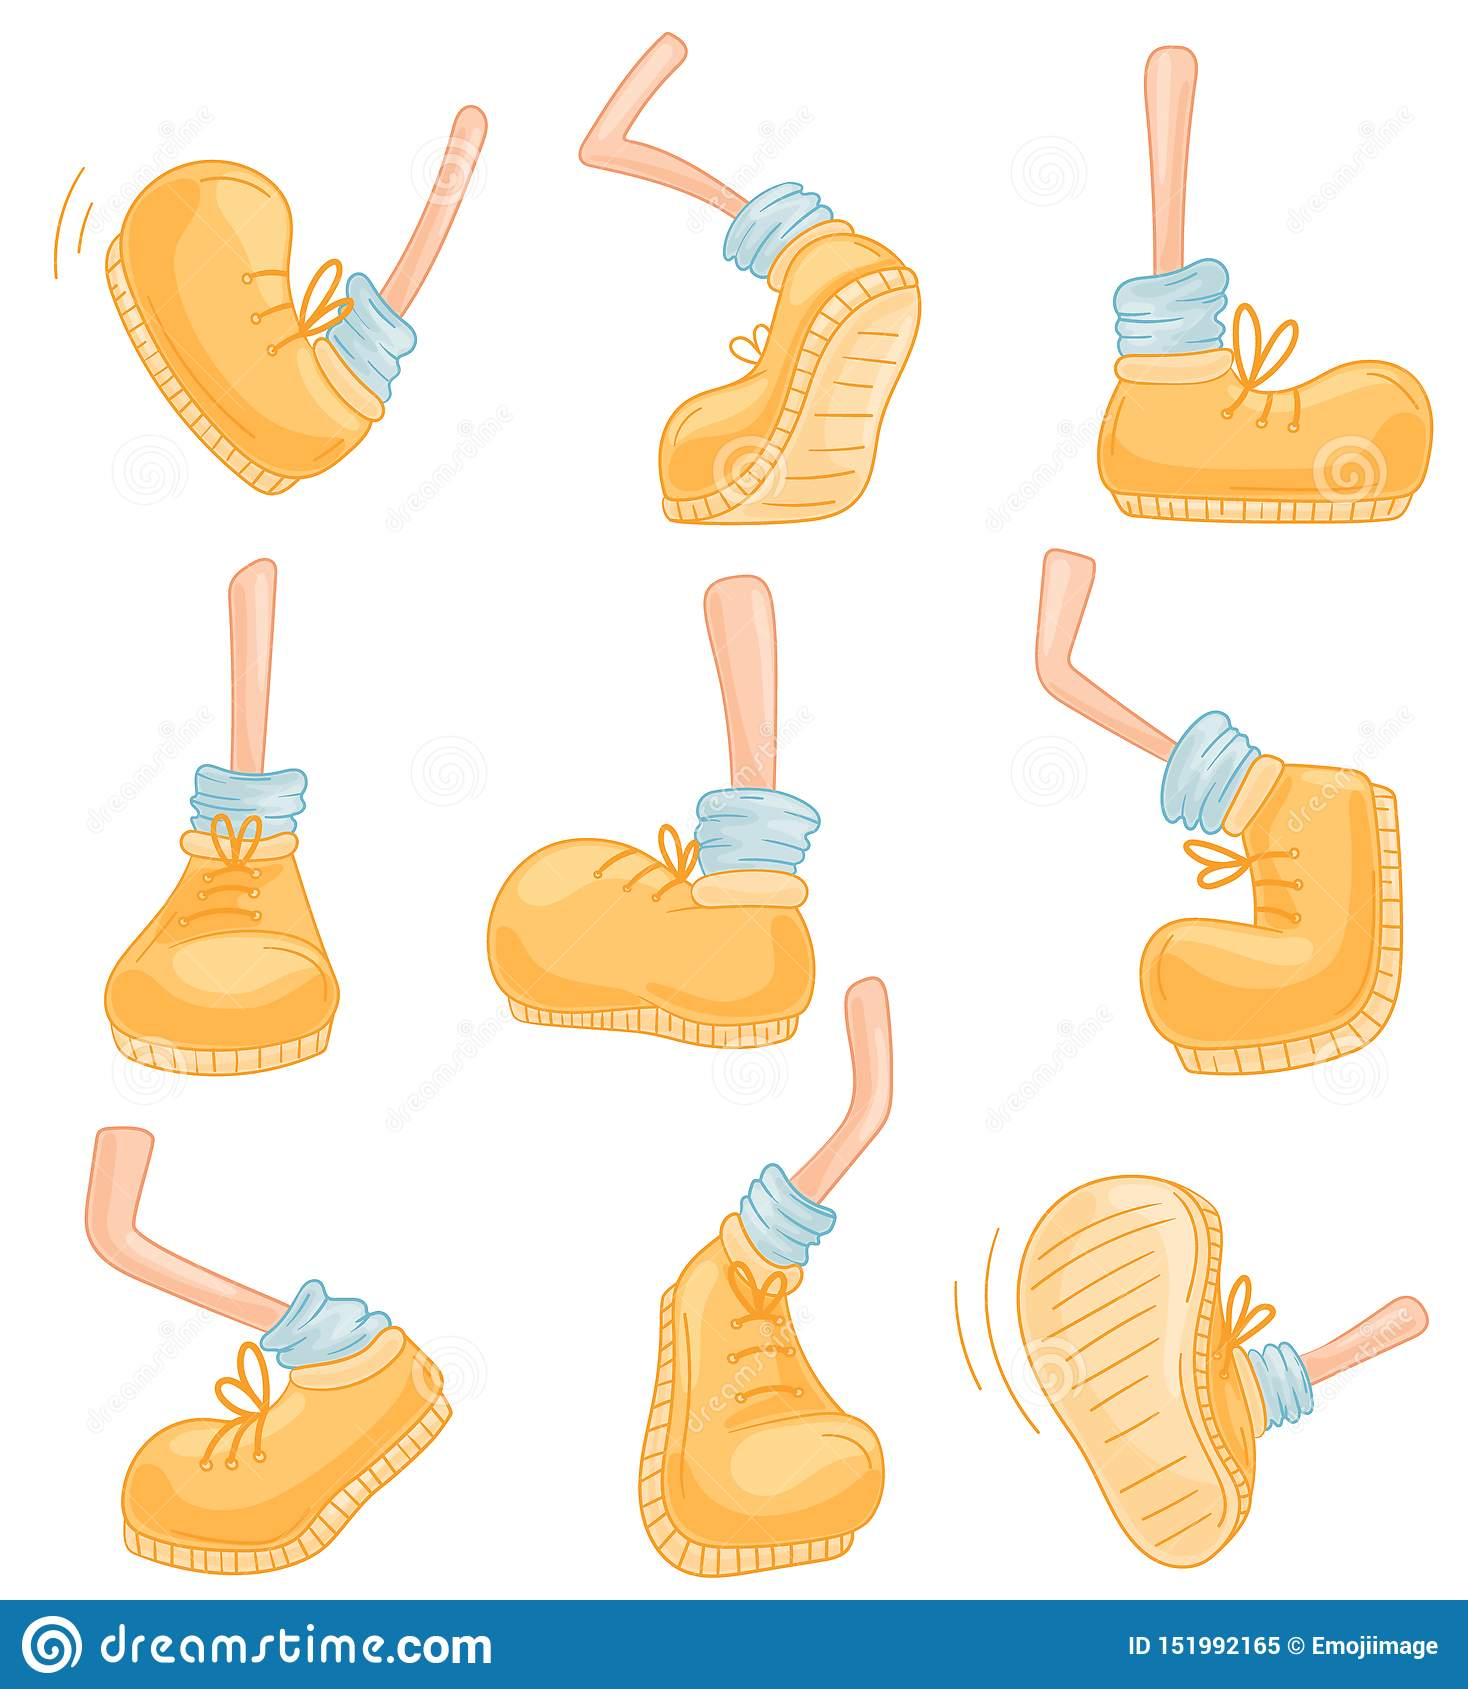 Set of images of legs in different poses. Vector illustration on white background.